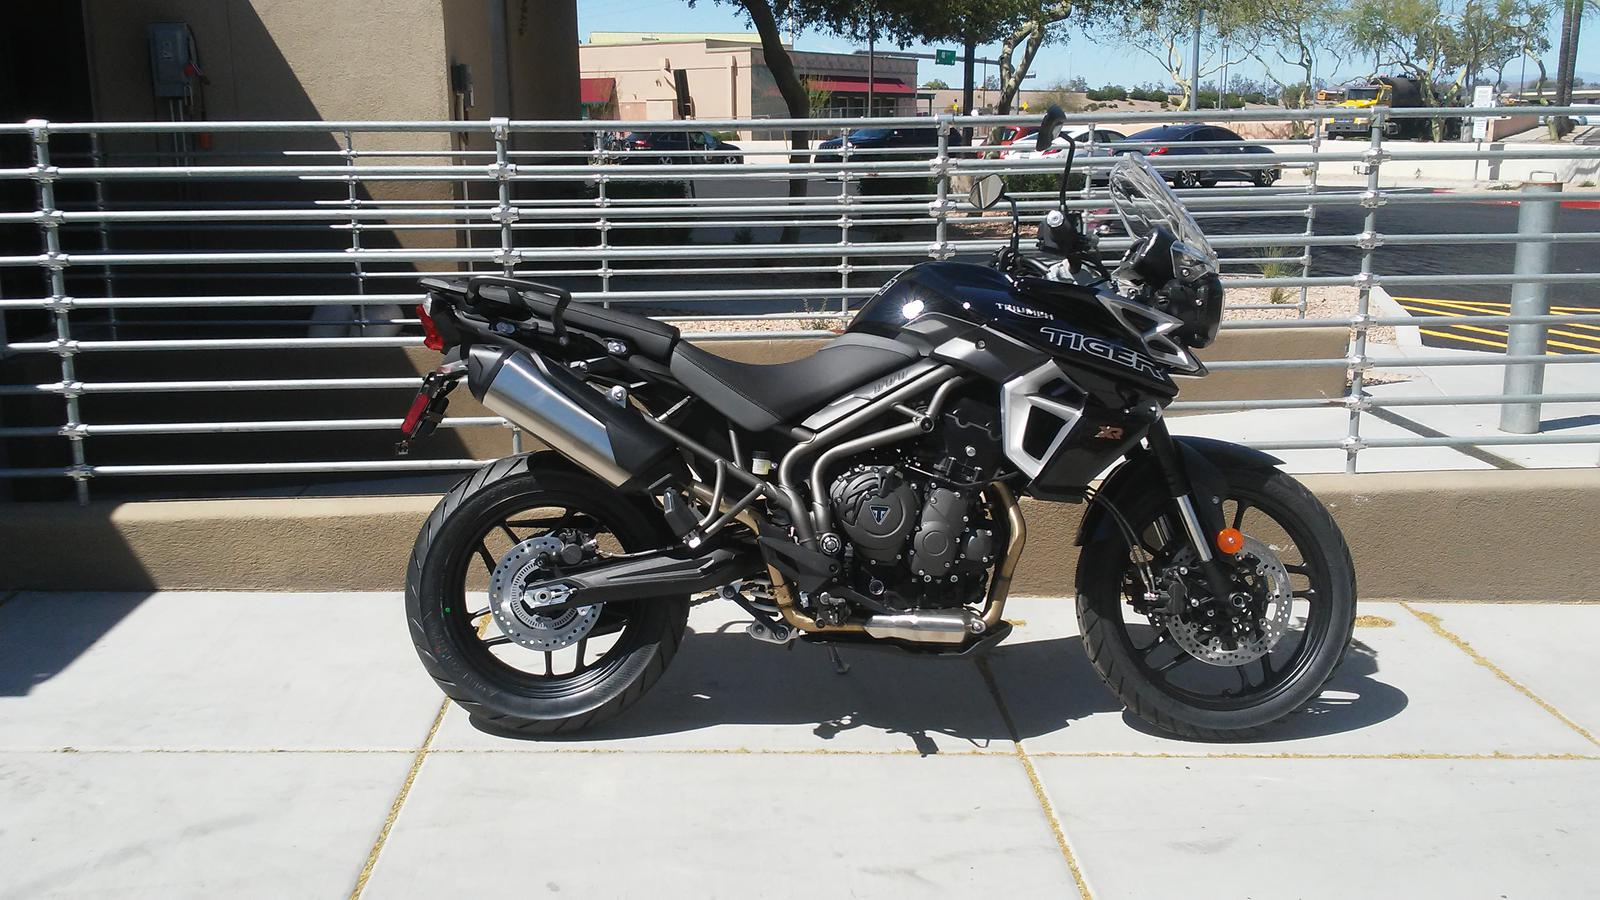 2019 Triumph Tiger 800 Xr For Sale In Peoria Az Go Az Motorcycles